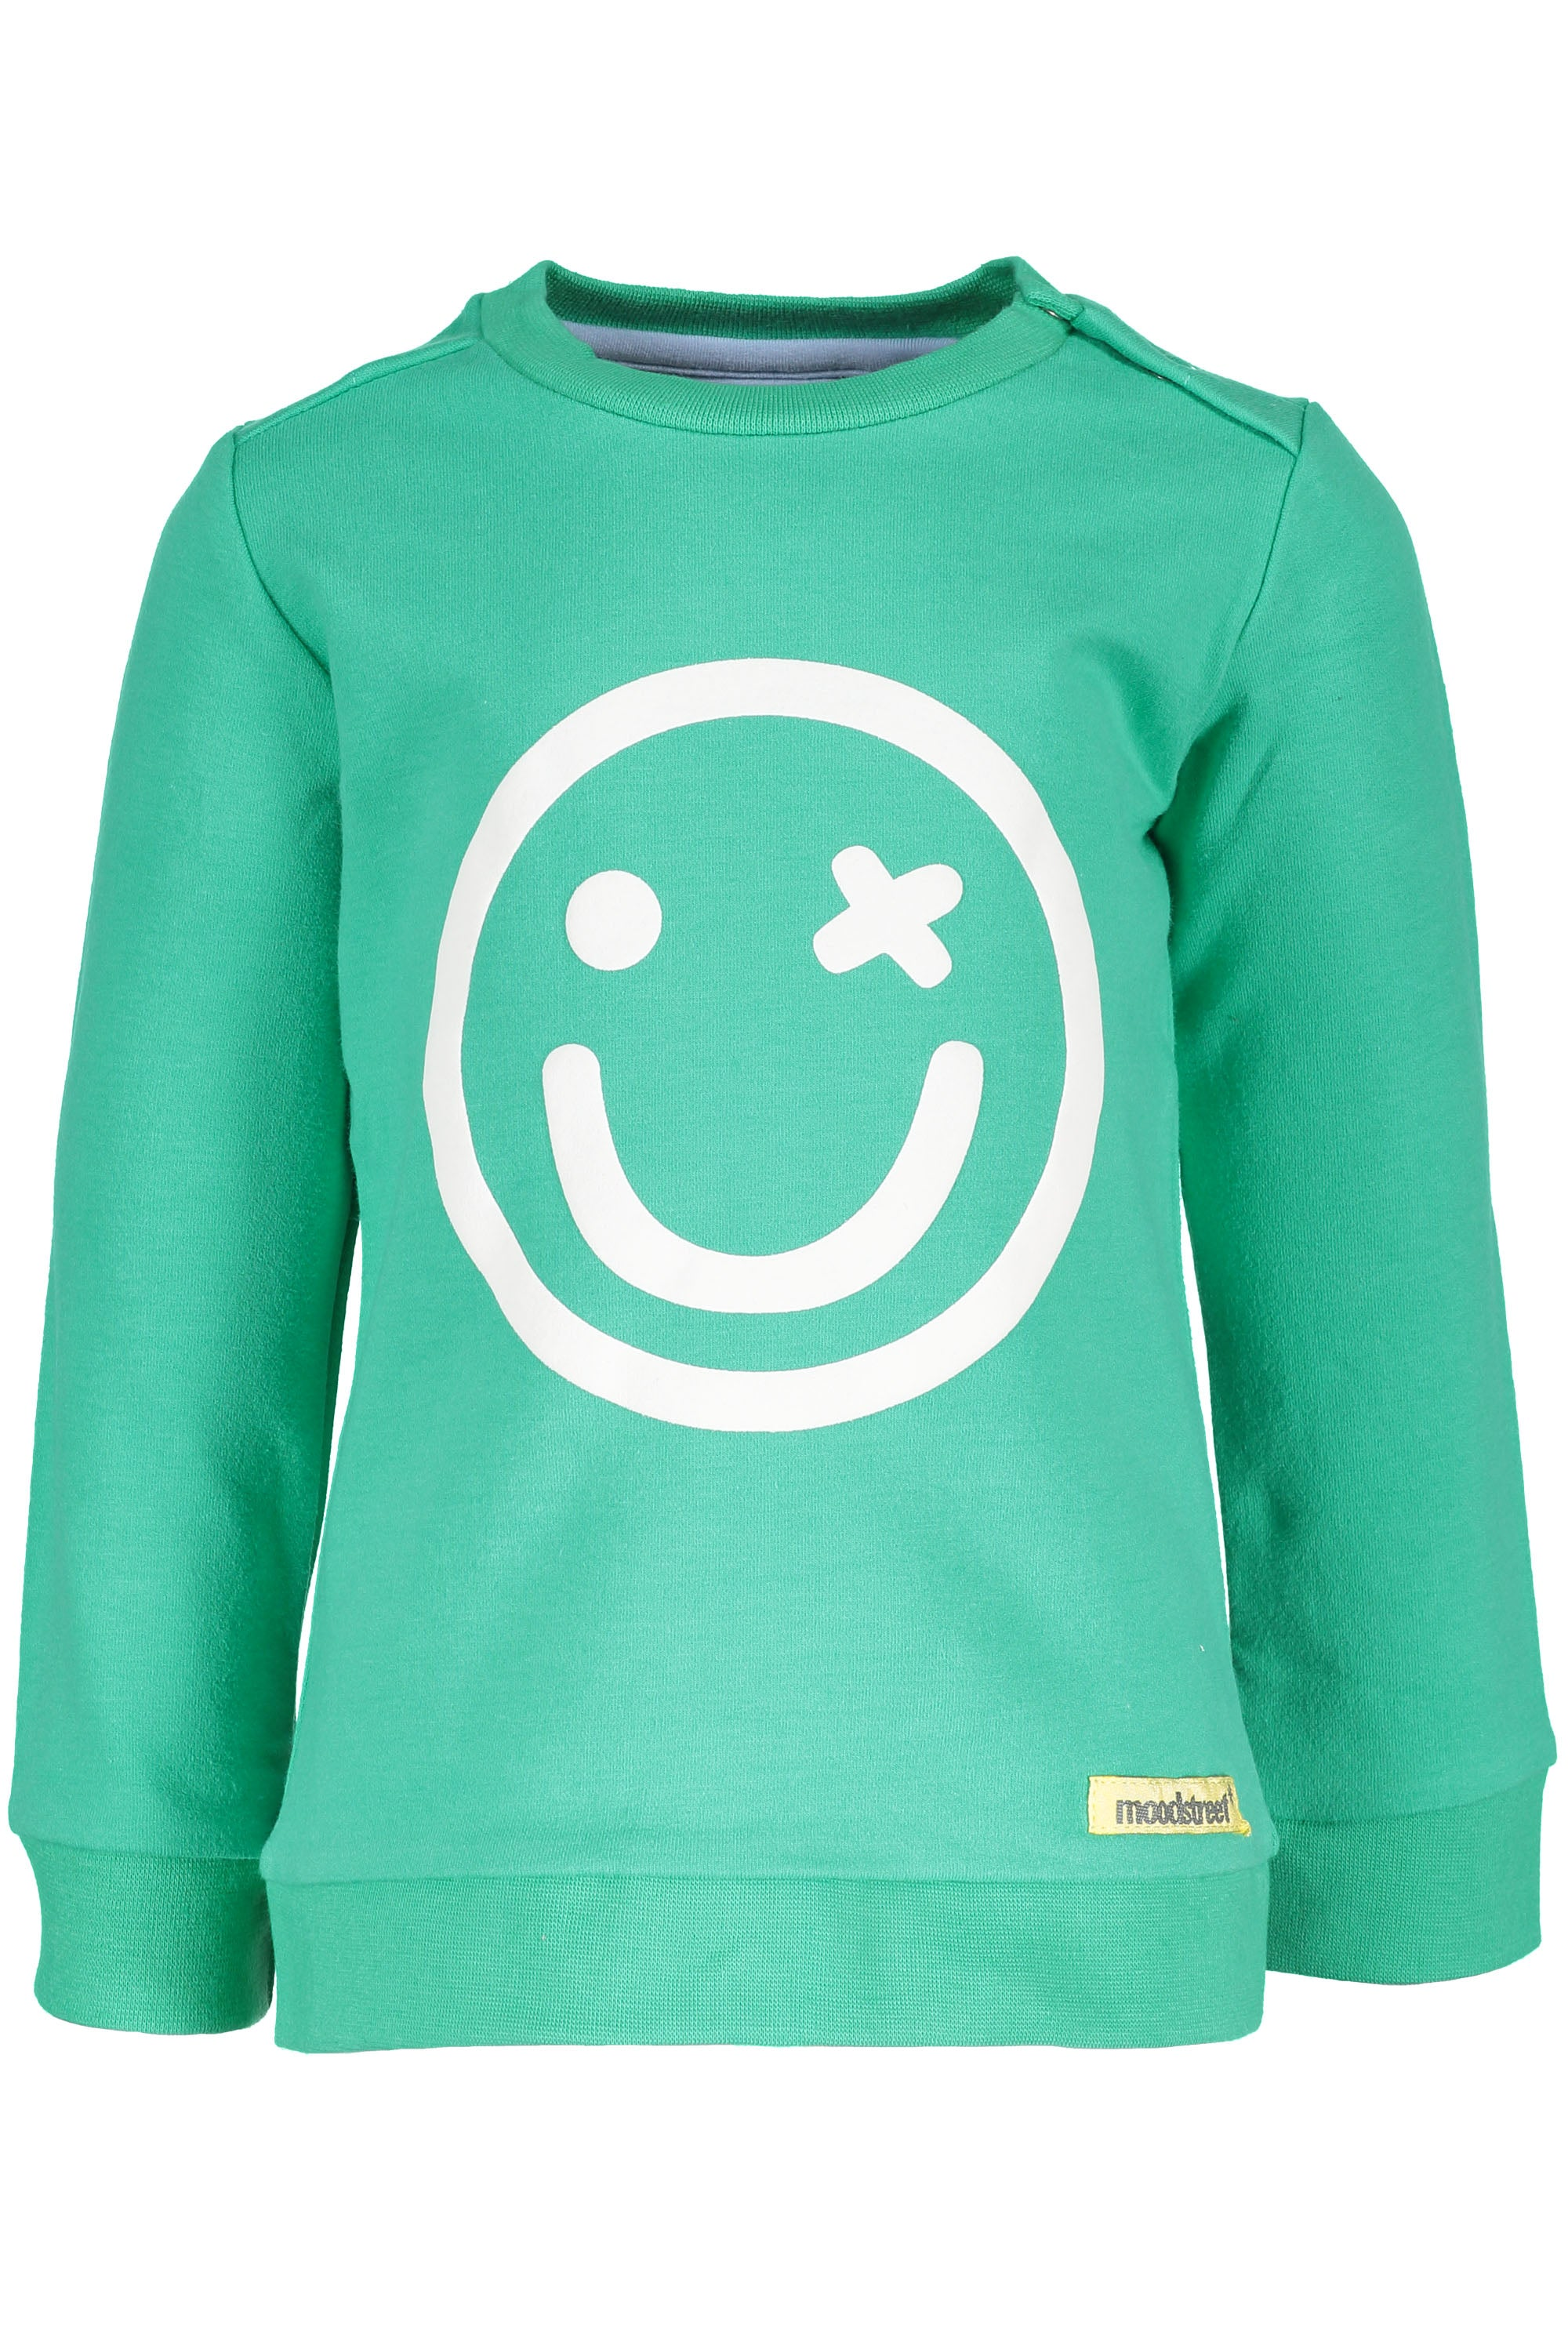 Sweater smiley Groen